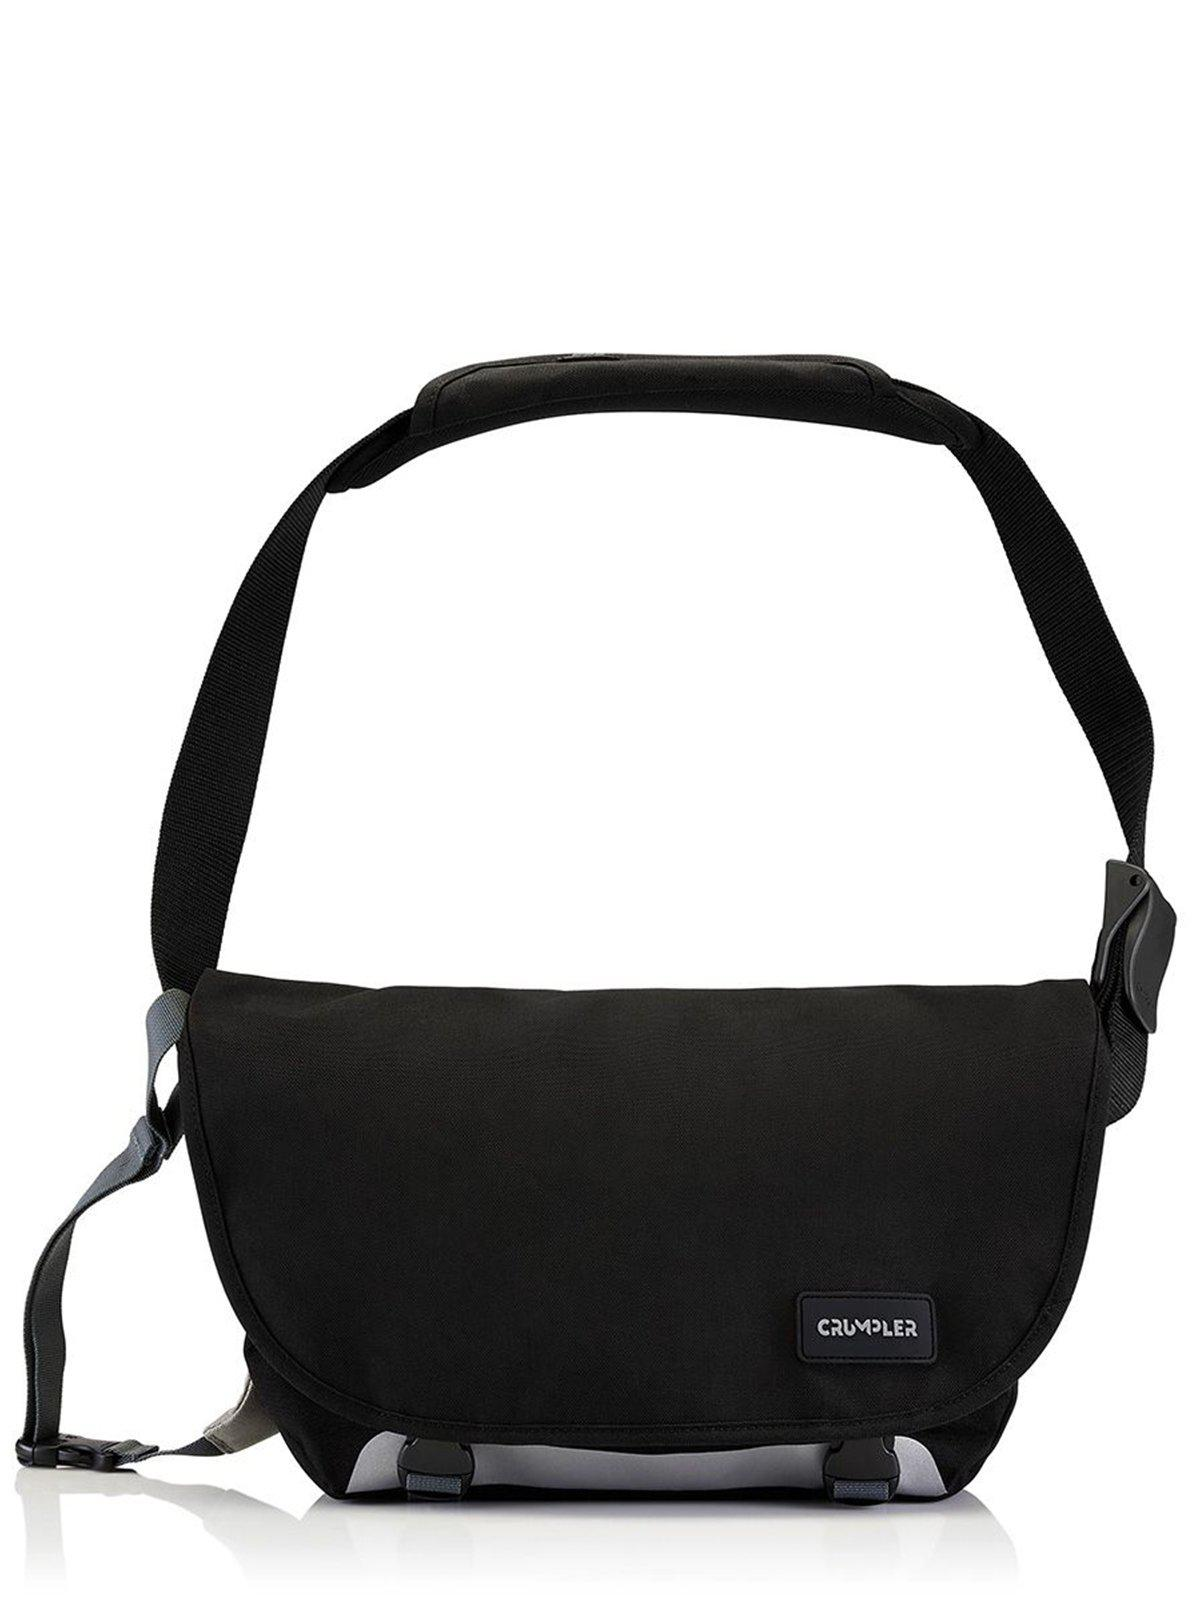 Crumpler Comfort Zone Messenger Large Black